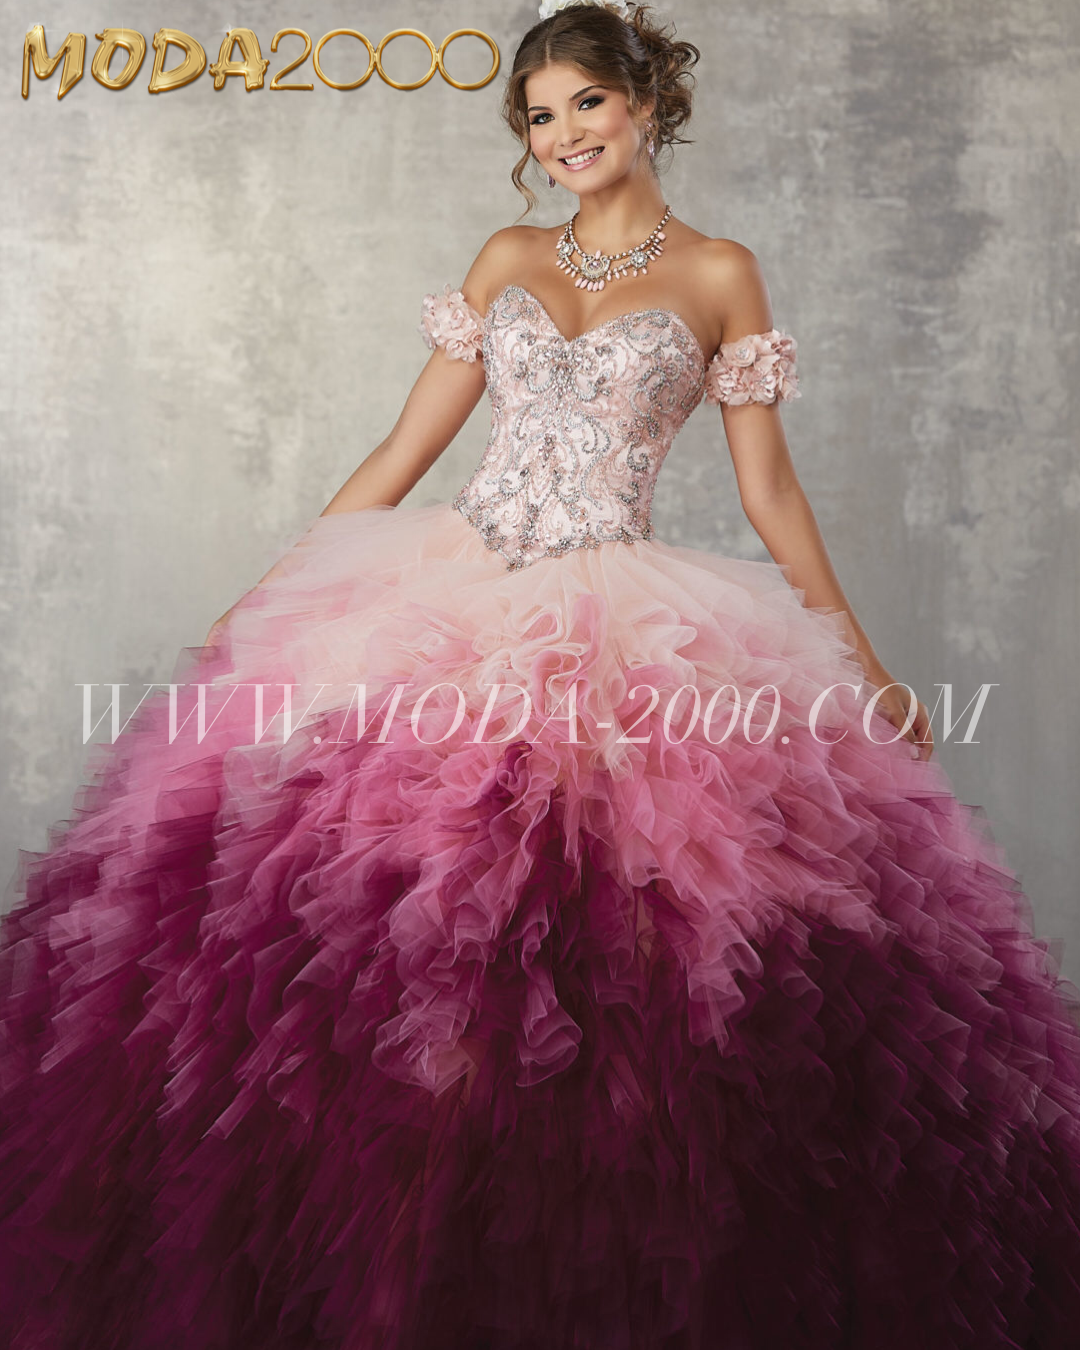 Beaded Blush Burgundy Ombre Off The Shoulder Quinceanera Dress Ruffles Available At Moda 2000 Instag Quinceanera Dresses Quincenera Dresses Ball Dresses [ 1350 x 1080 Pixel ]